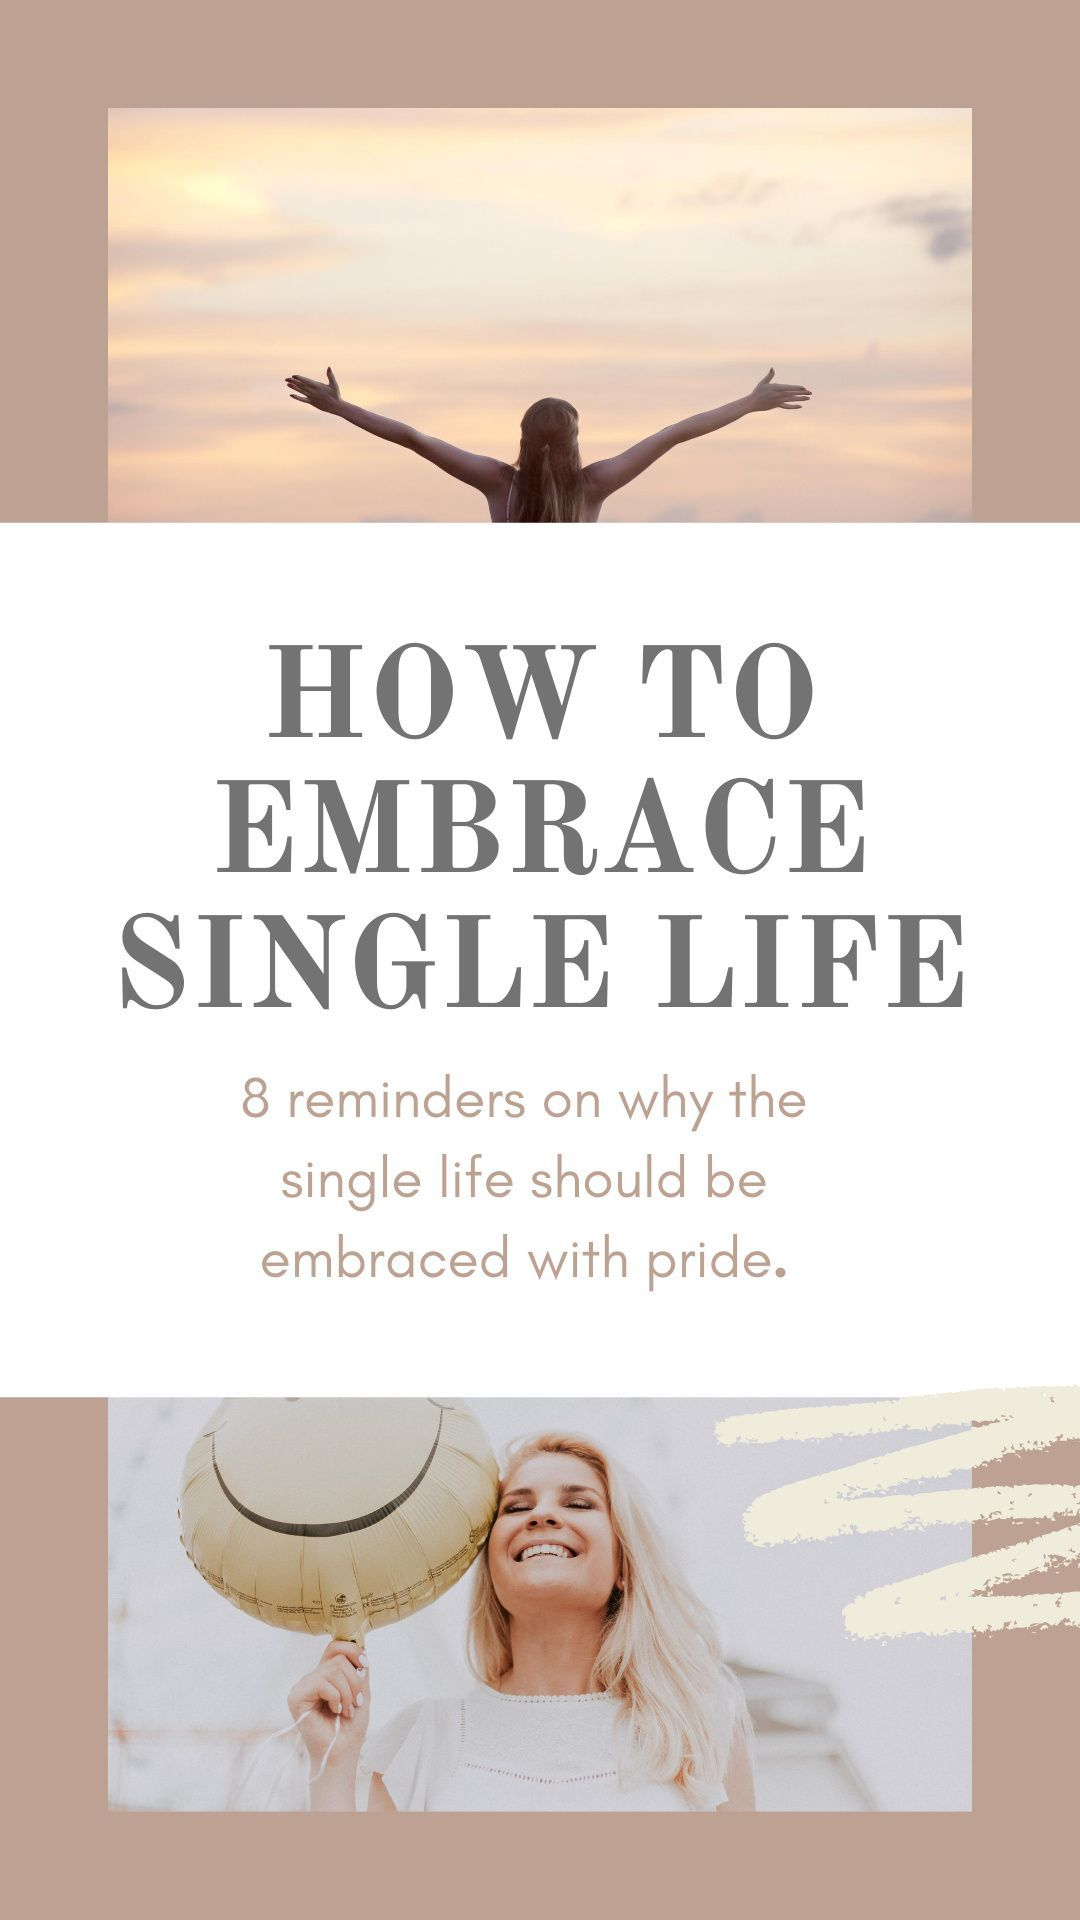 How to embrace single life. Self care tips. Love your life! Healing a broken heart. Being single in your mid twenties. #singlelife #selflove #single #selfcare